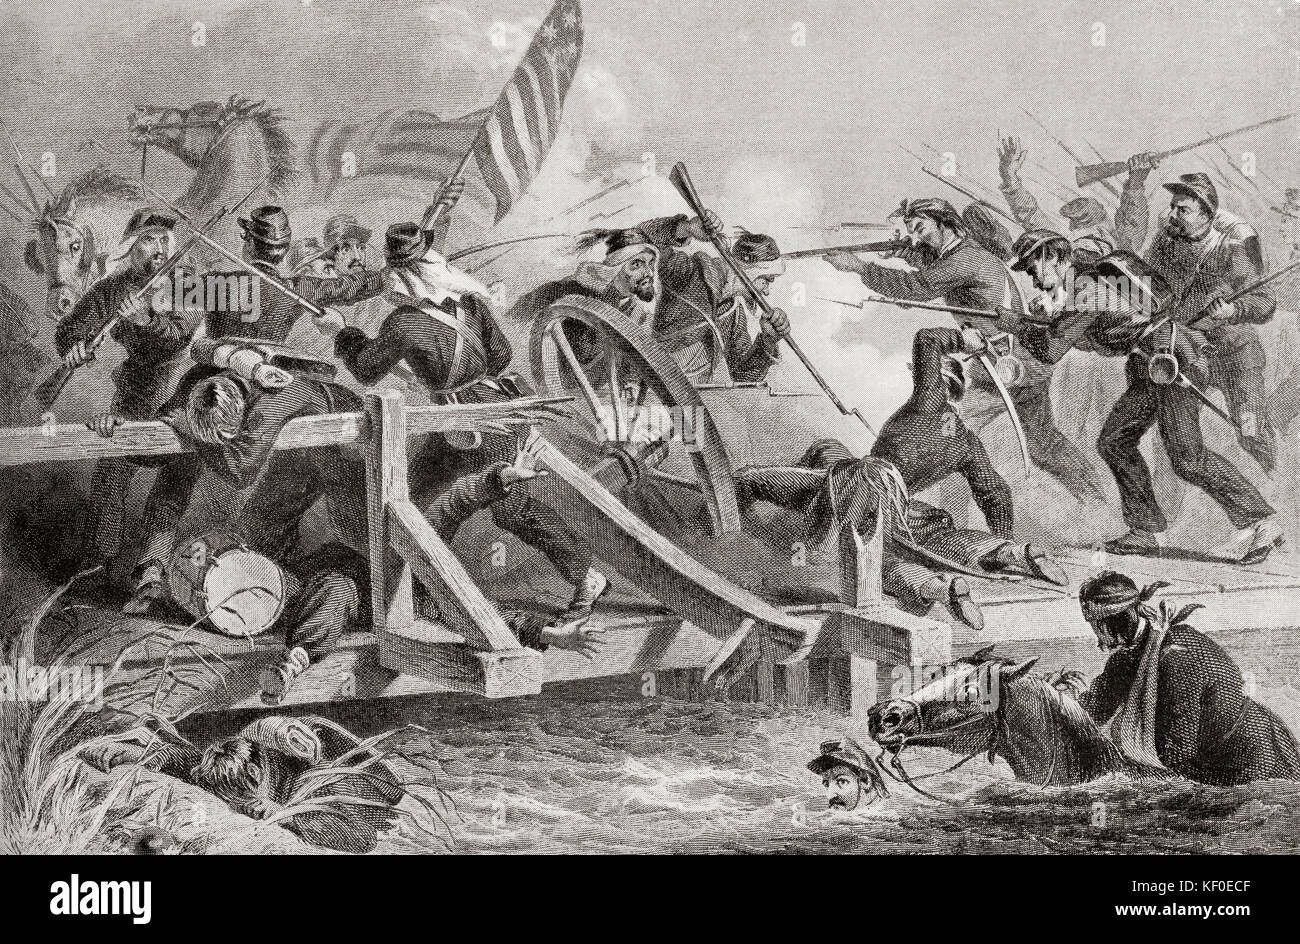 The retreat by Union Forces after the Battle of Bull Run, aka the Battle of First Manassas, July 21, 1861 during - Stock Image